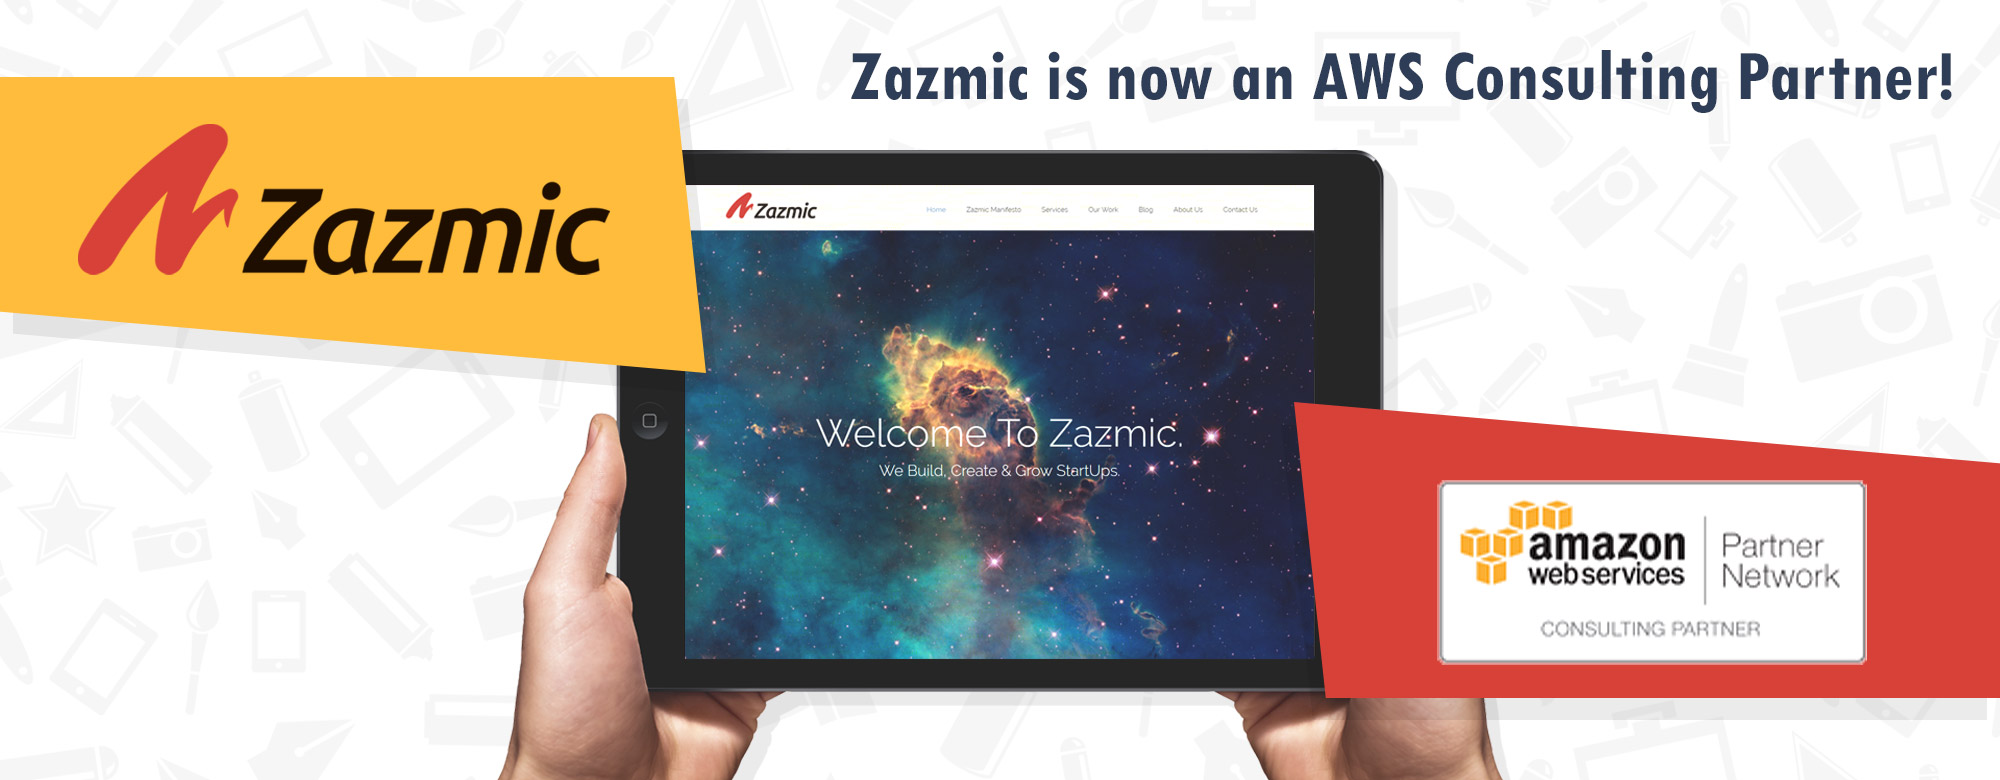 We are proud to announce that Zazmic is now an AWS CONSULTING PARTNER!